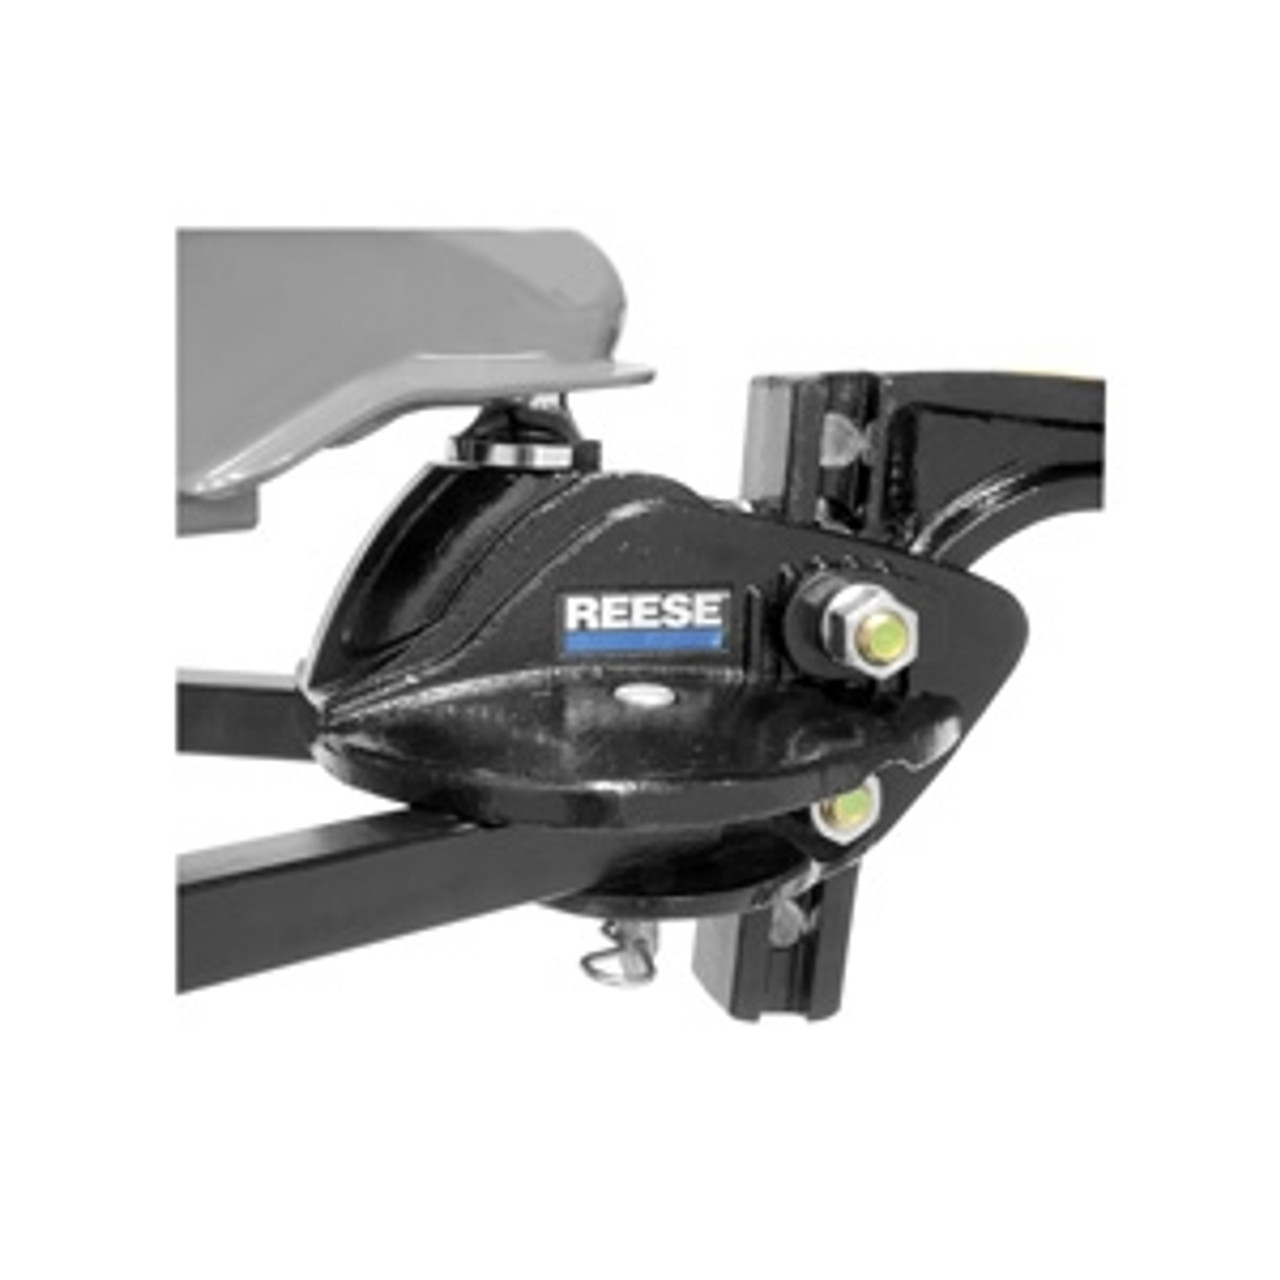 66560 --- Reese STEADi-FLEX® 12,000 lb Trunnion Weight-Distributing Hitch Kit with Shank